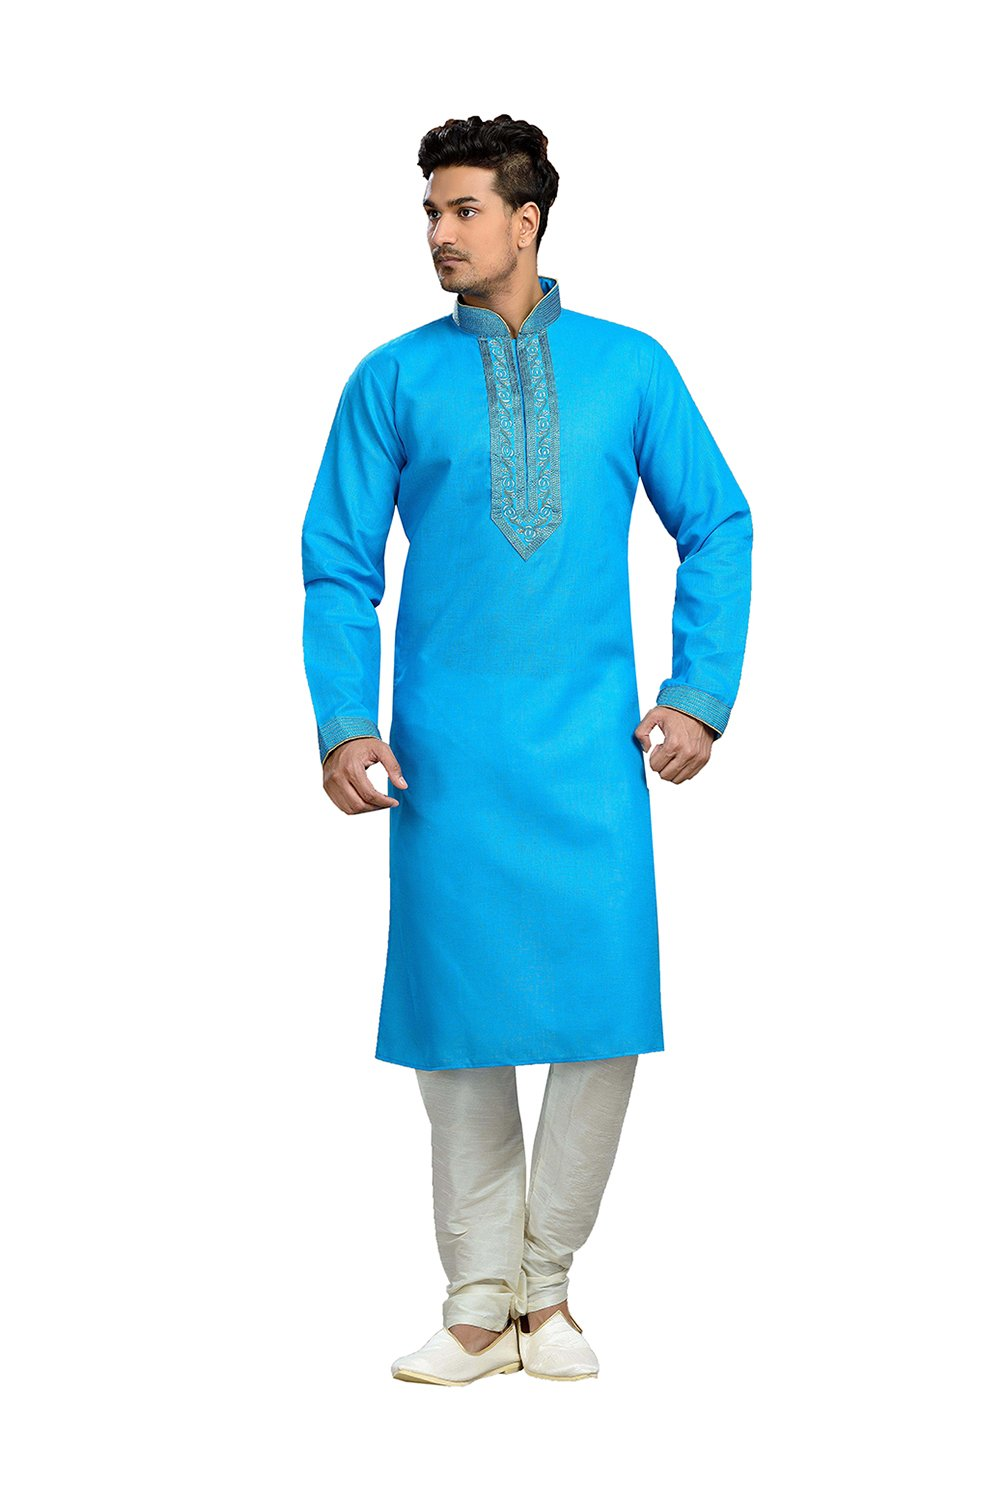 CANDY VINES Handmade Cotton Men's Kurta Pajamas Set - Traditional Indian Costume - Perfect For Casual Summer Dress